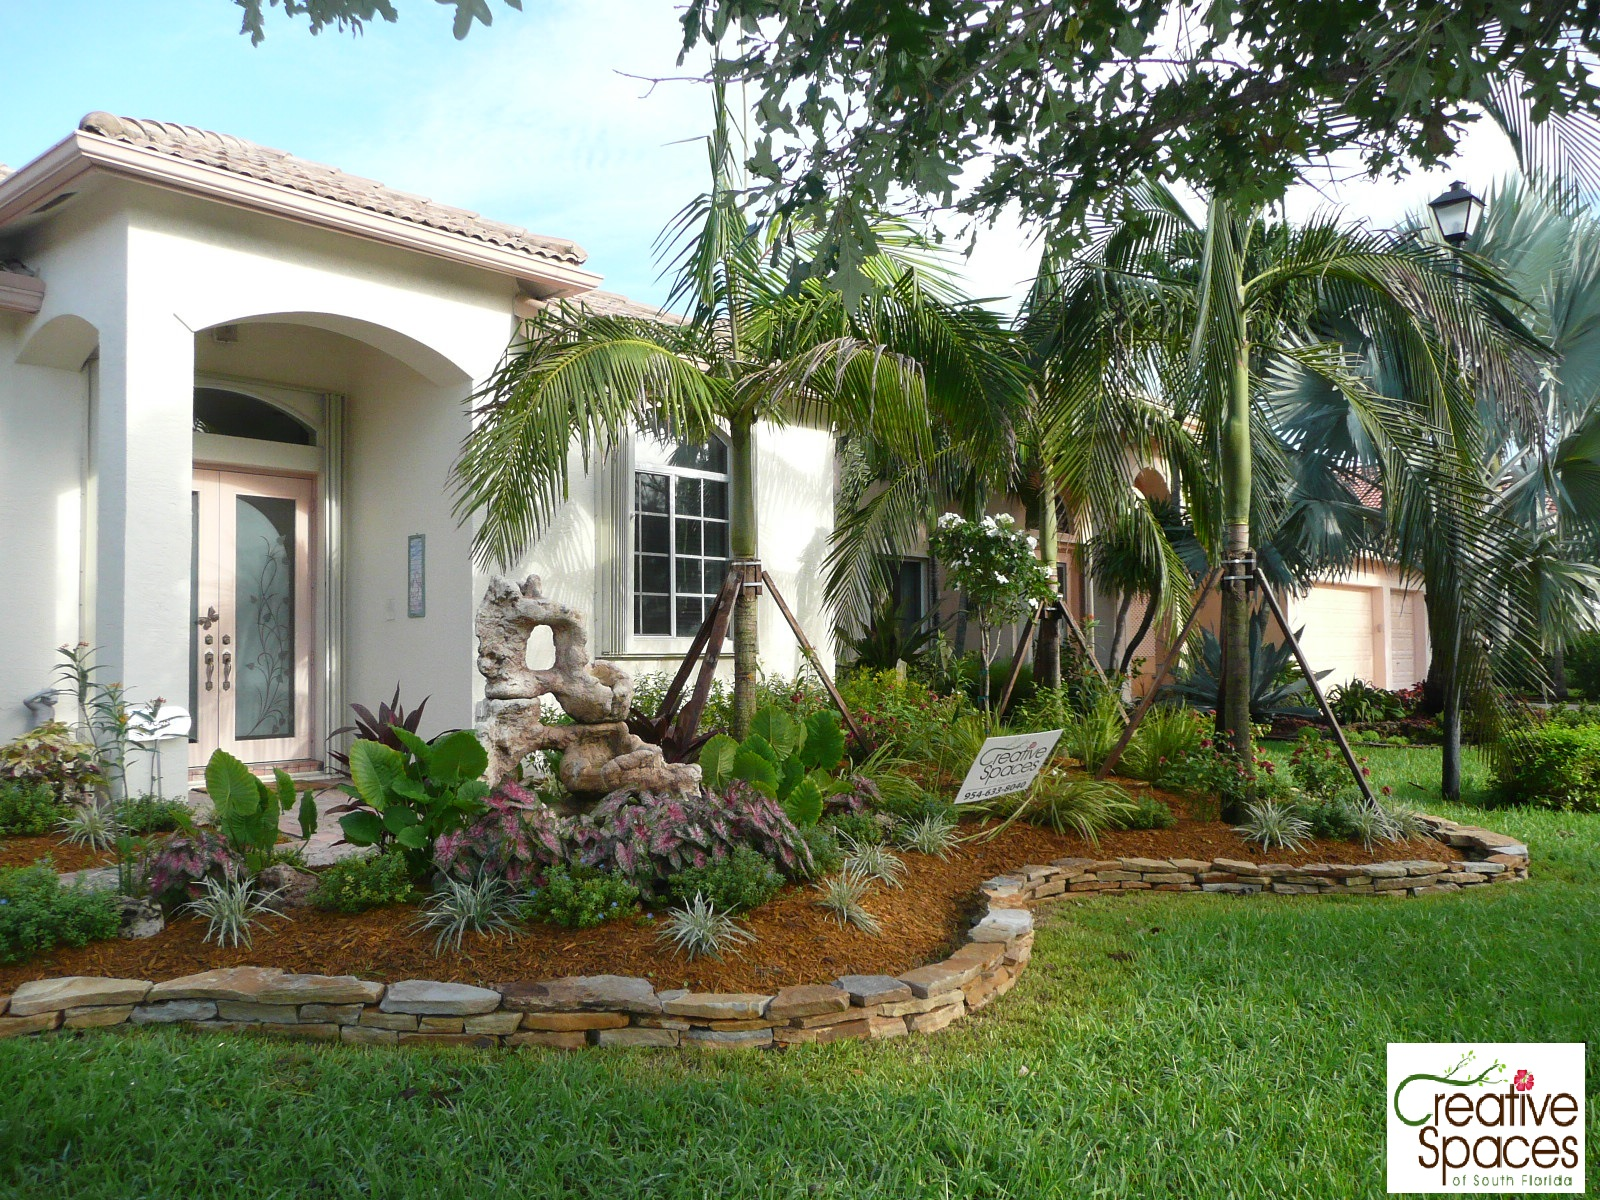 Landscaping landscaping ideas front yard south florida for Florida backyard landscaping ideas